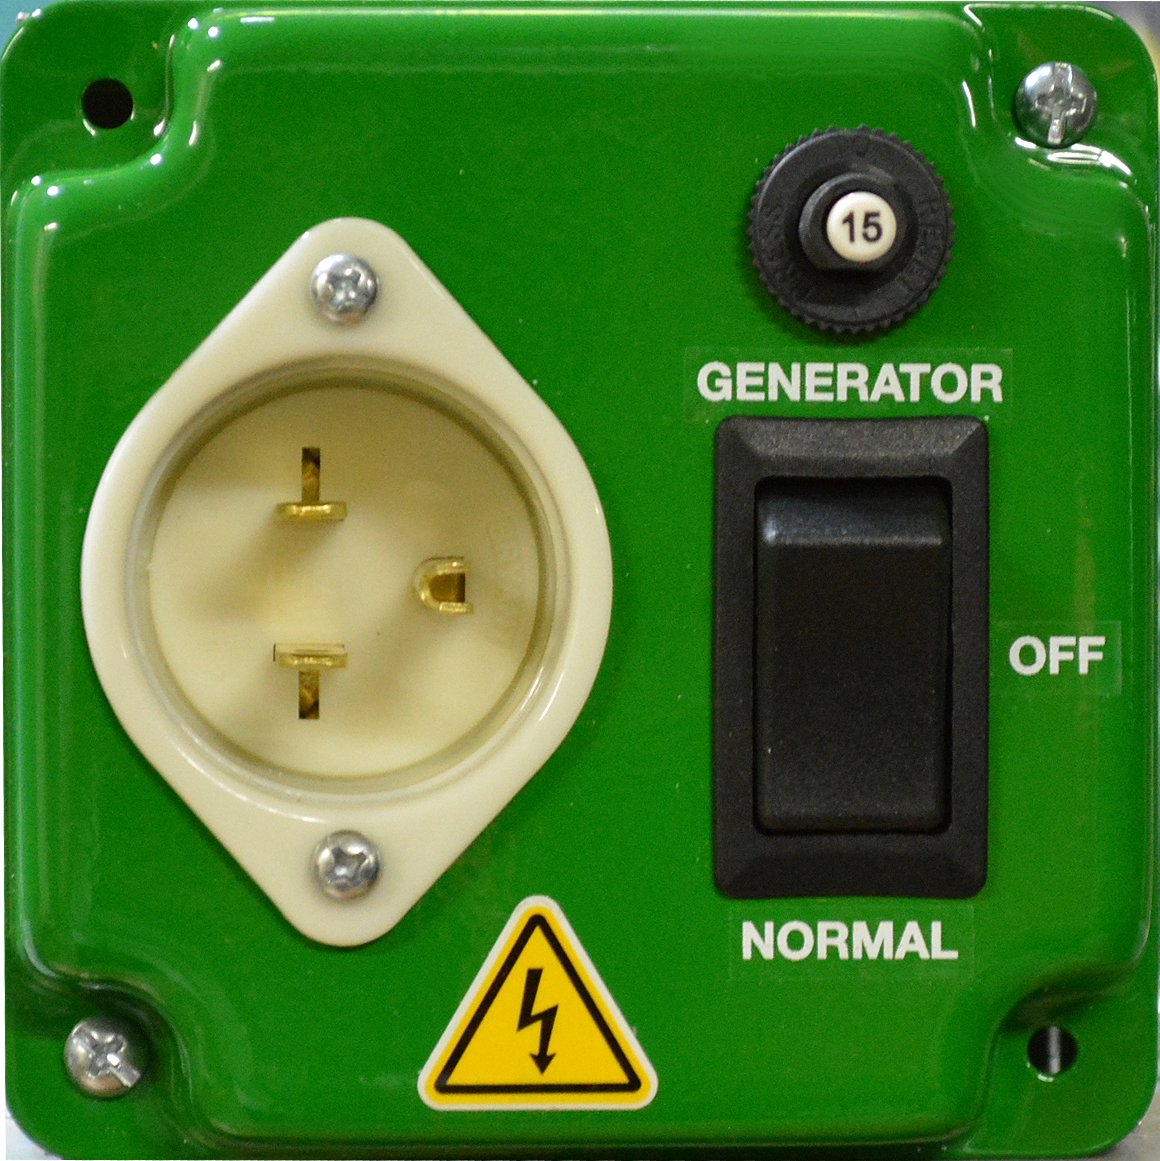 EZ GENERATOR SWITCH - Generator Manual Transfer Switch UNIVERSAL UL/CSA  approved product image